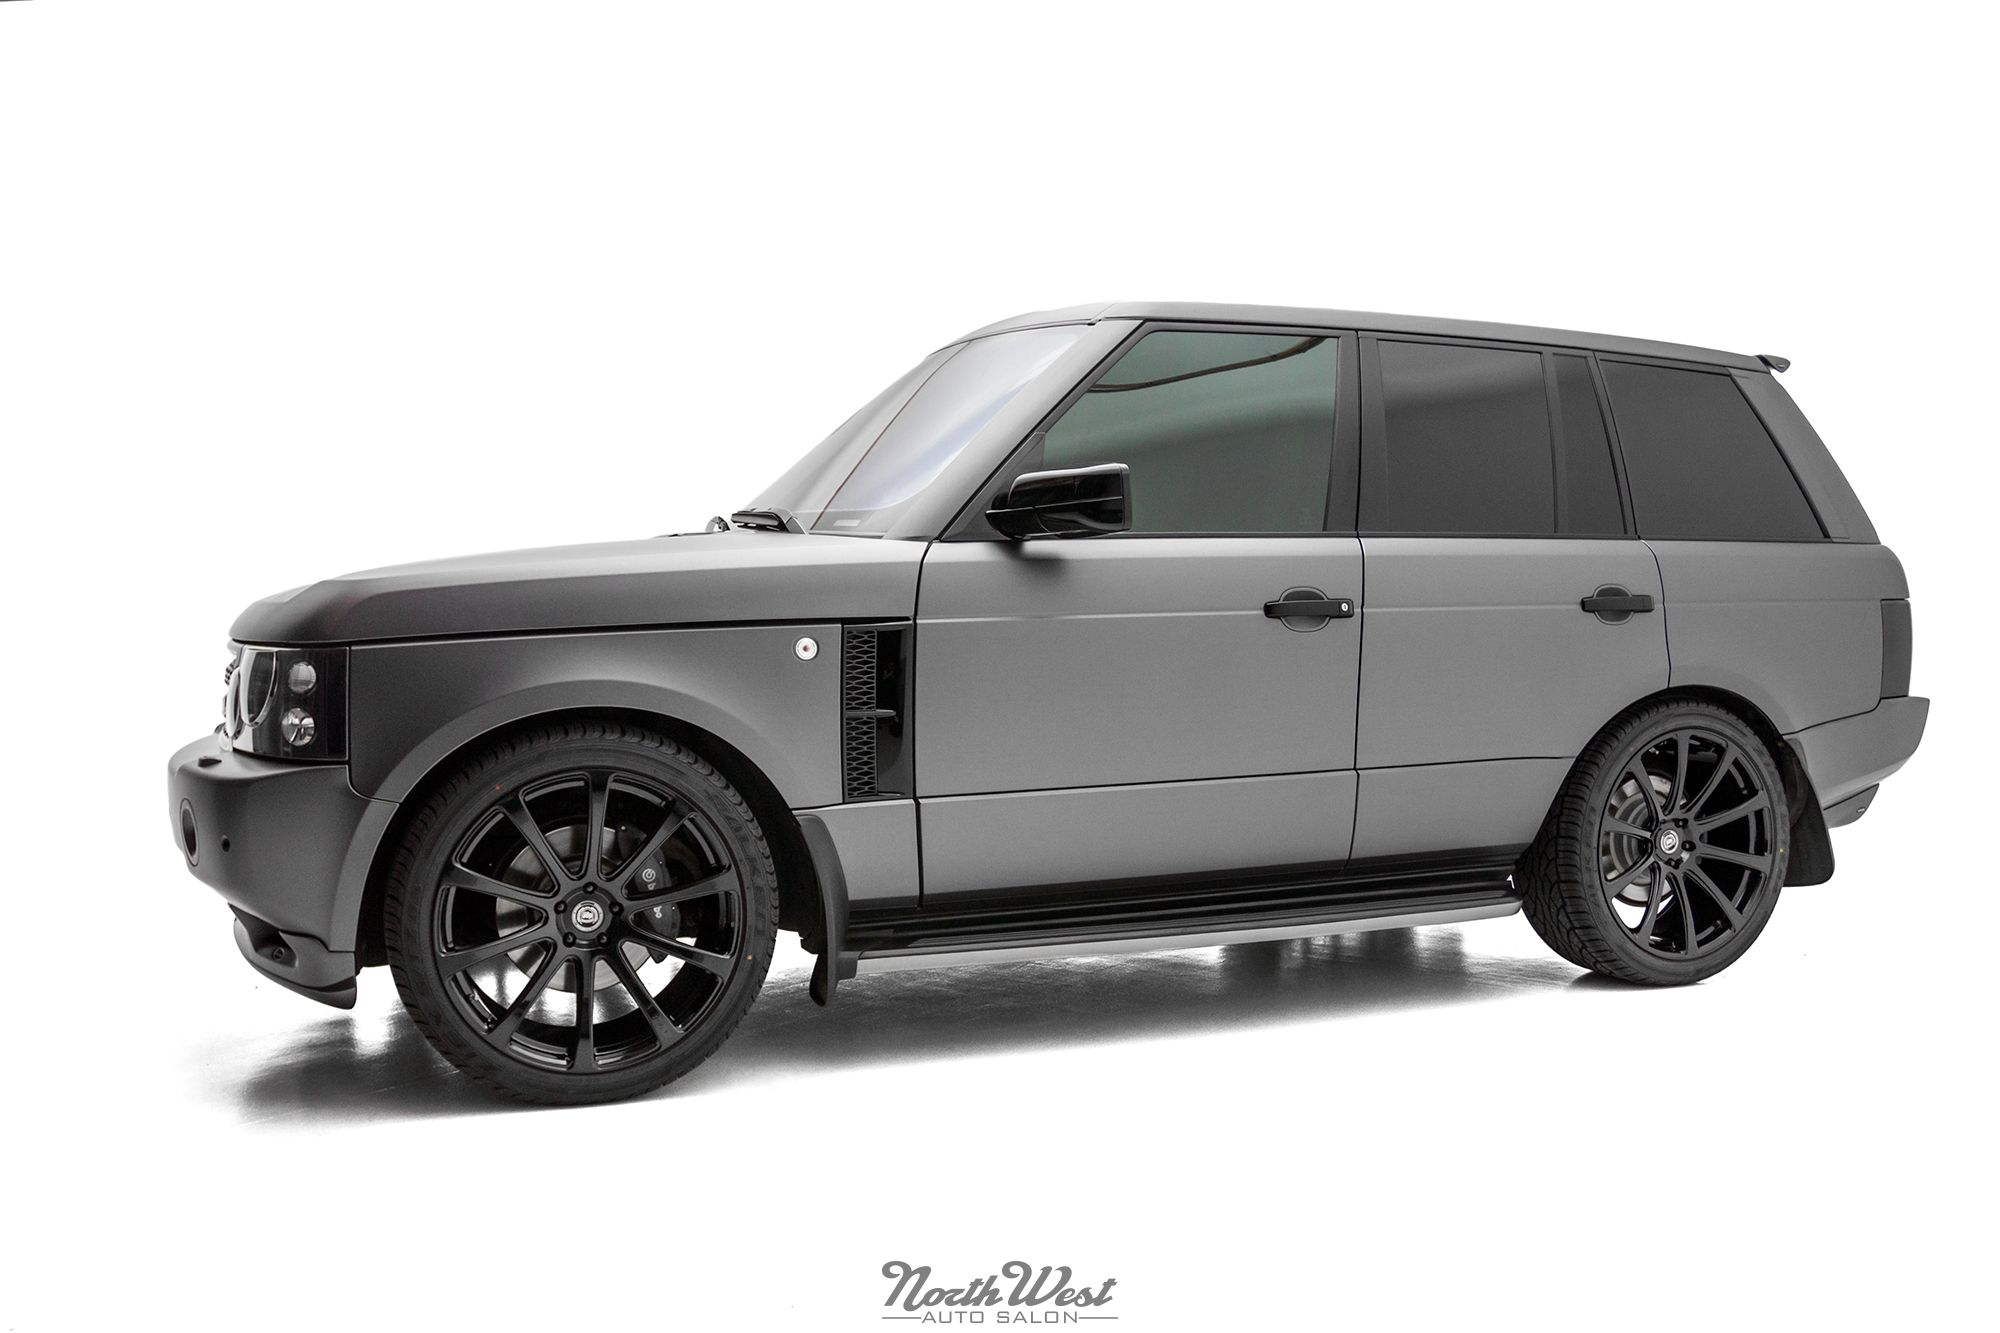 Overfinch Range Rover HSE Vehicle Wrap on DPE Wheels at NWAS